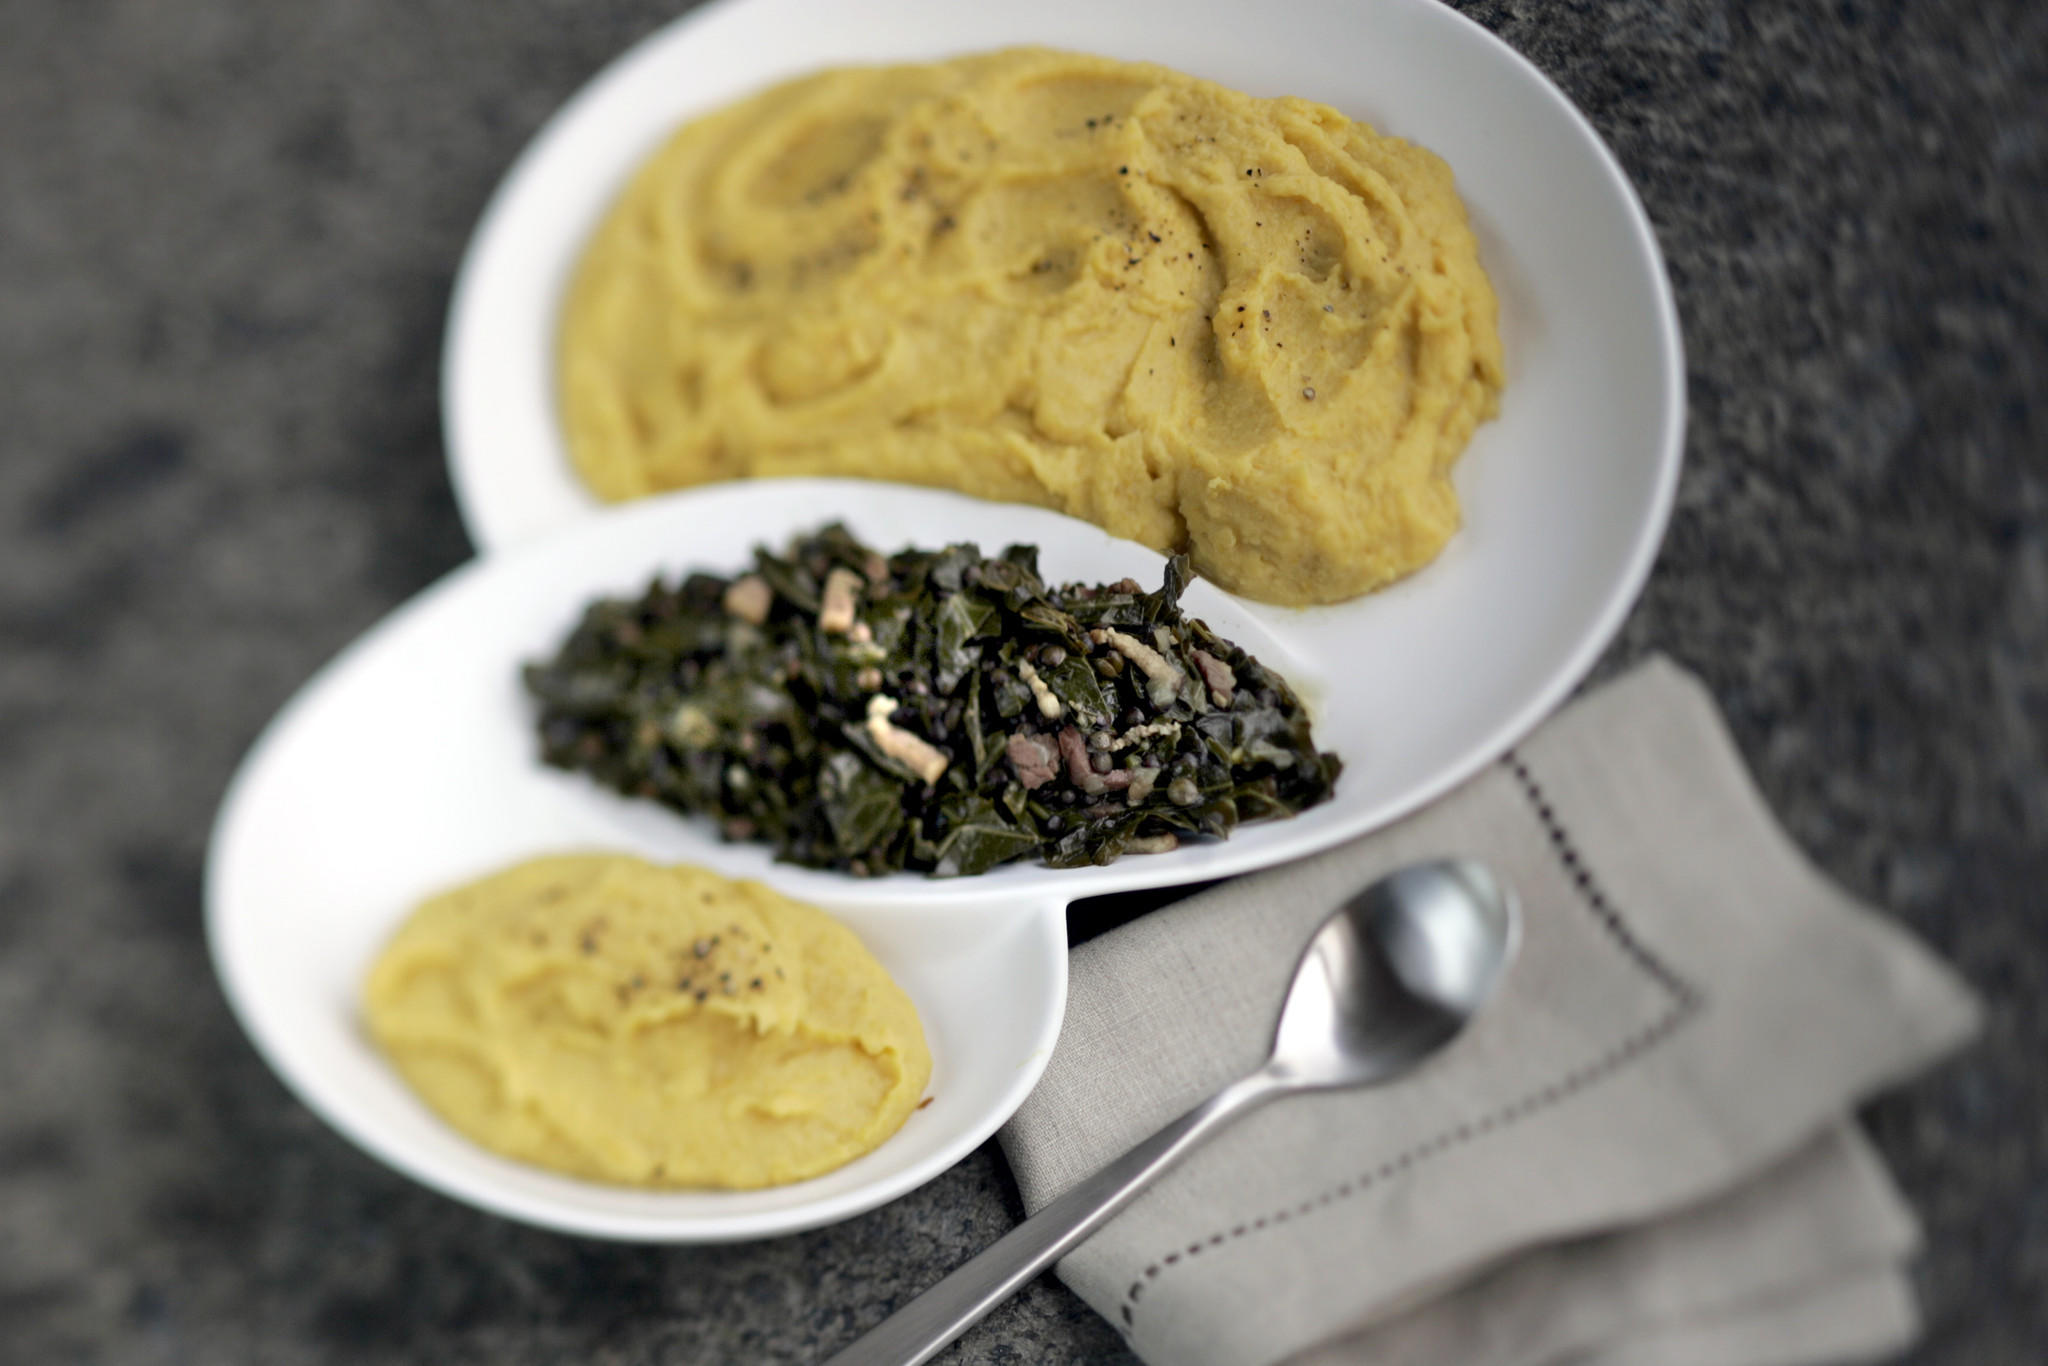 Spiced sweet potato puree